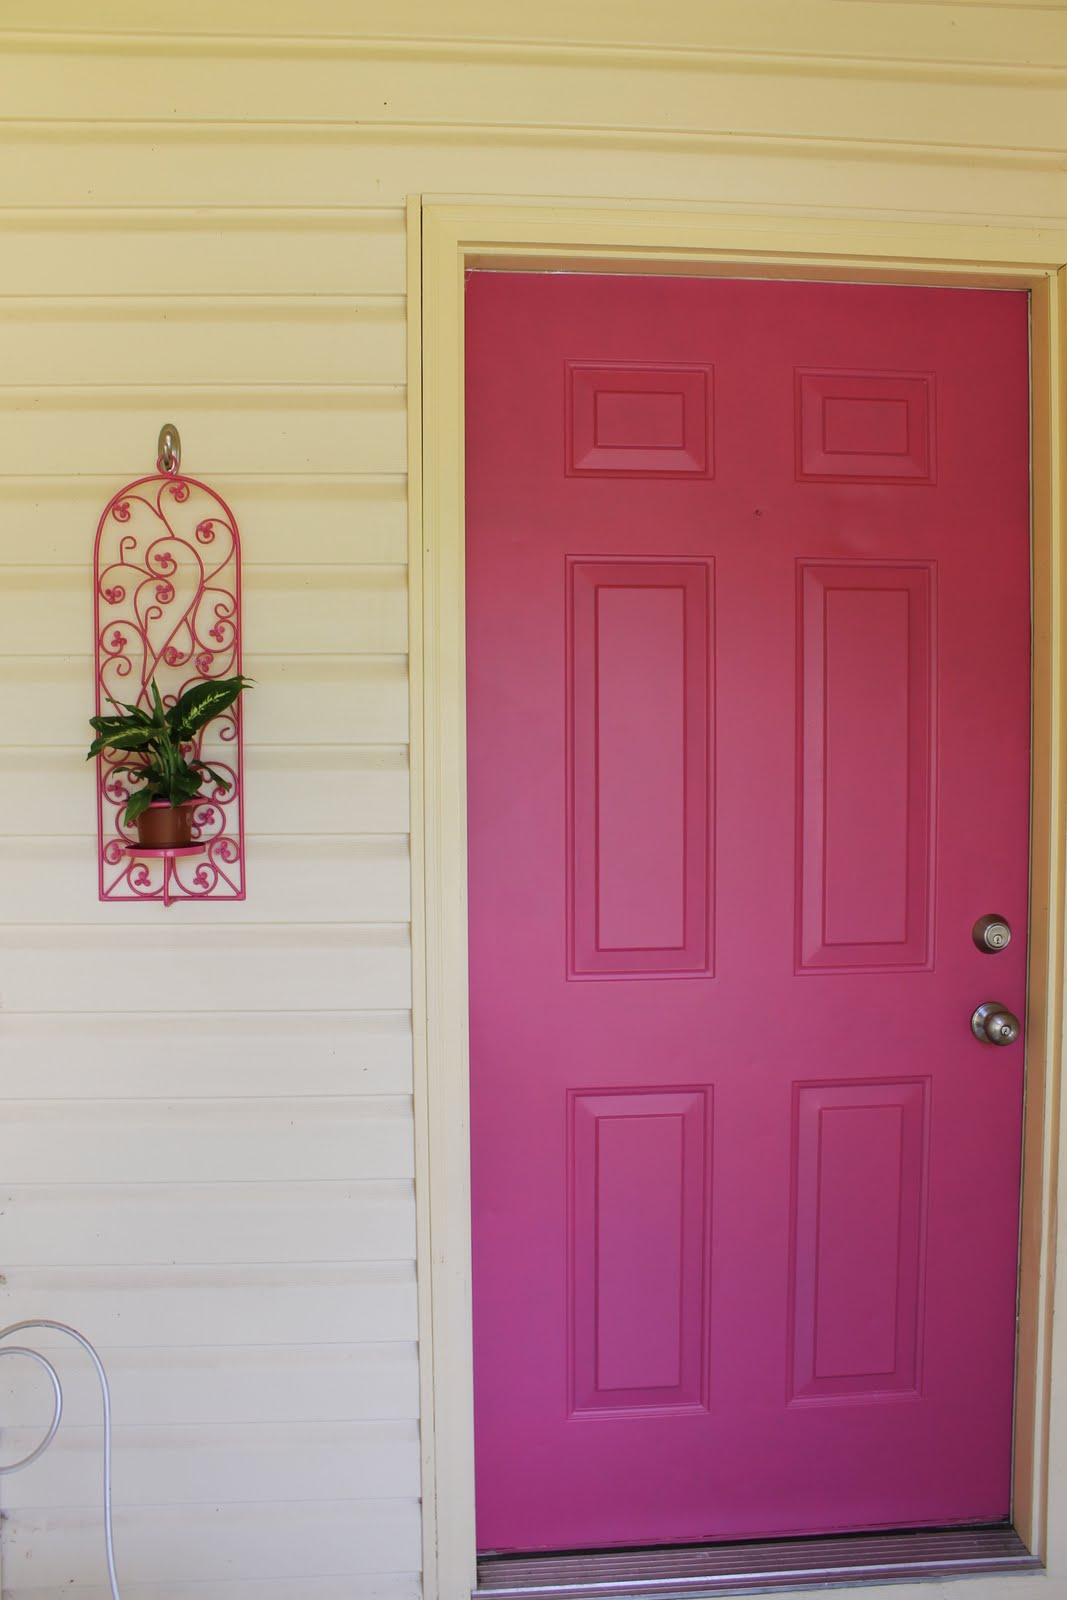 It is pretty hard to see from the road in these pictures but in real life the porch is less dark. The door is the same color as the middle circle on ... & Hems and Haws: Pink Door